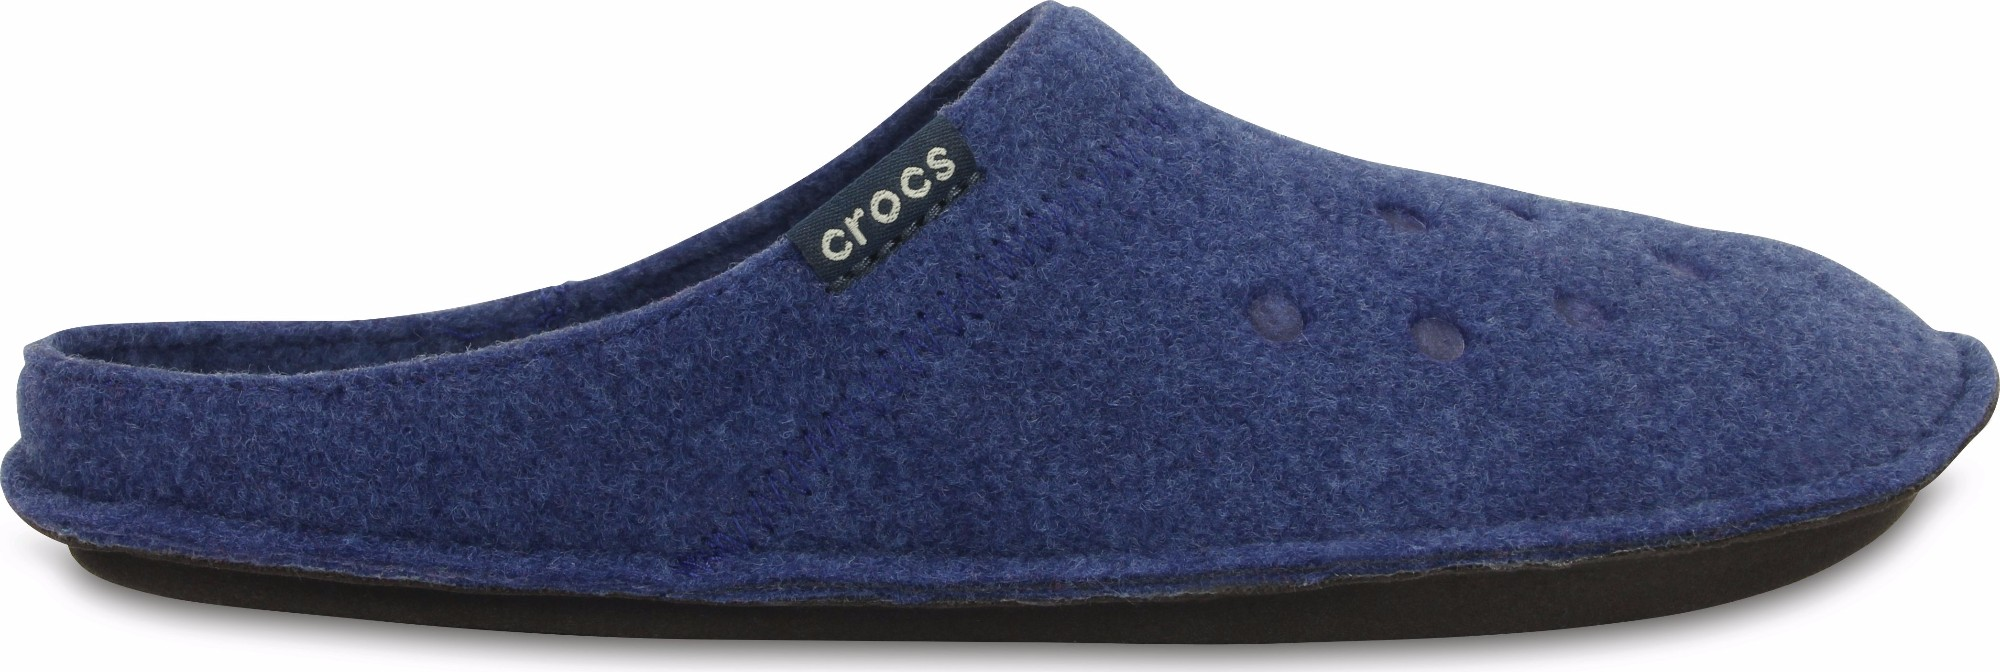 Crocs™ Classic Slipper Cerulean Blue/Oatmeal 42,5